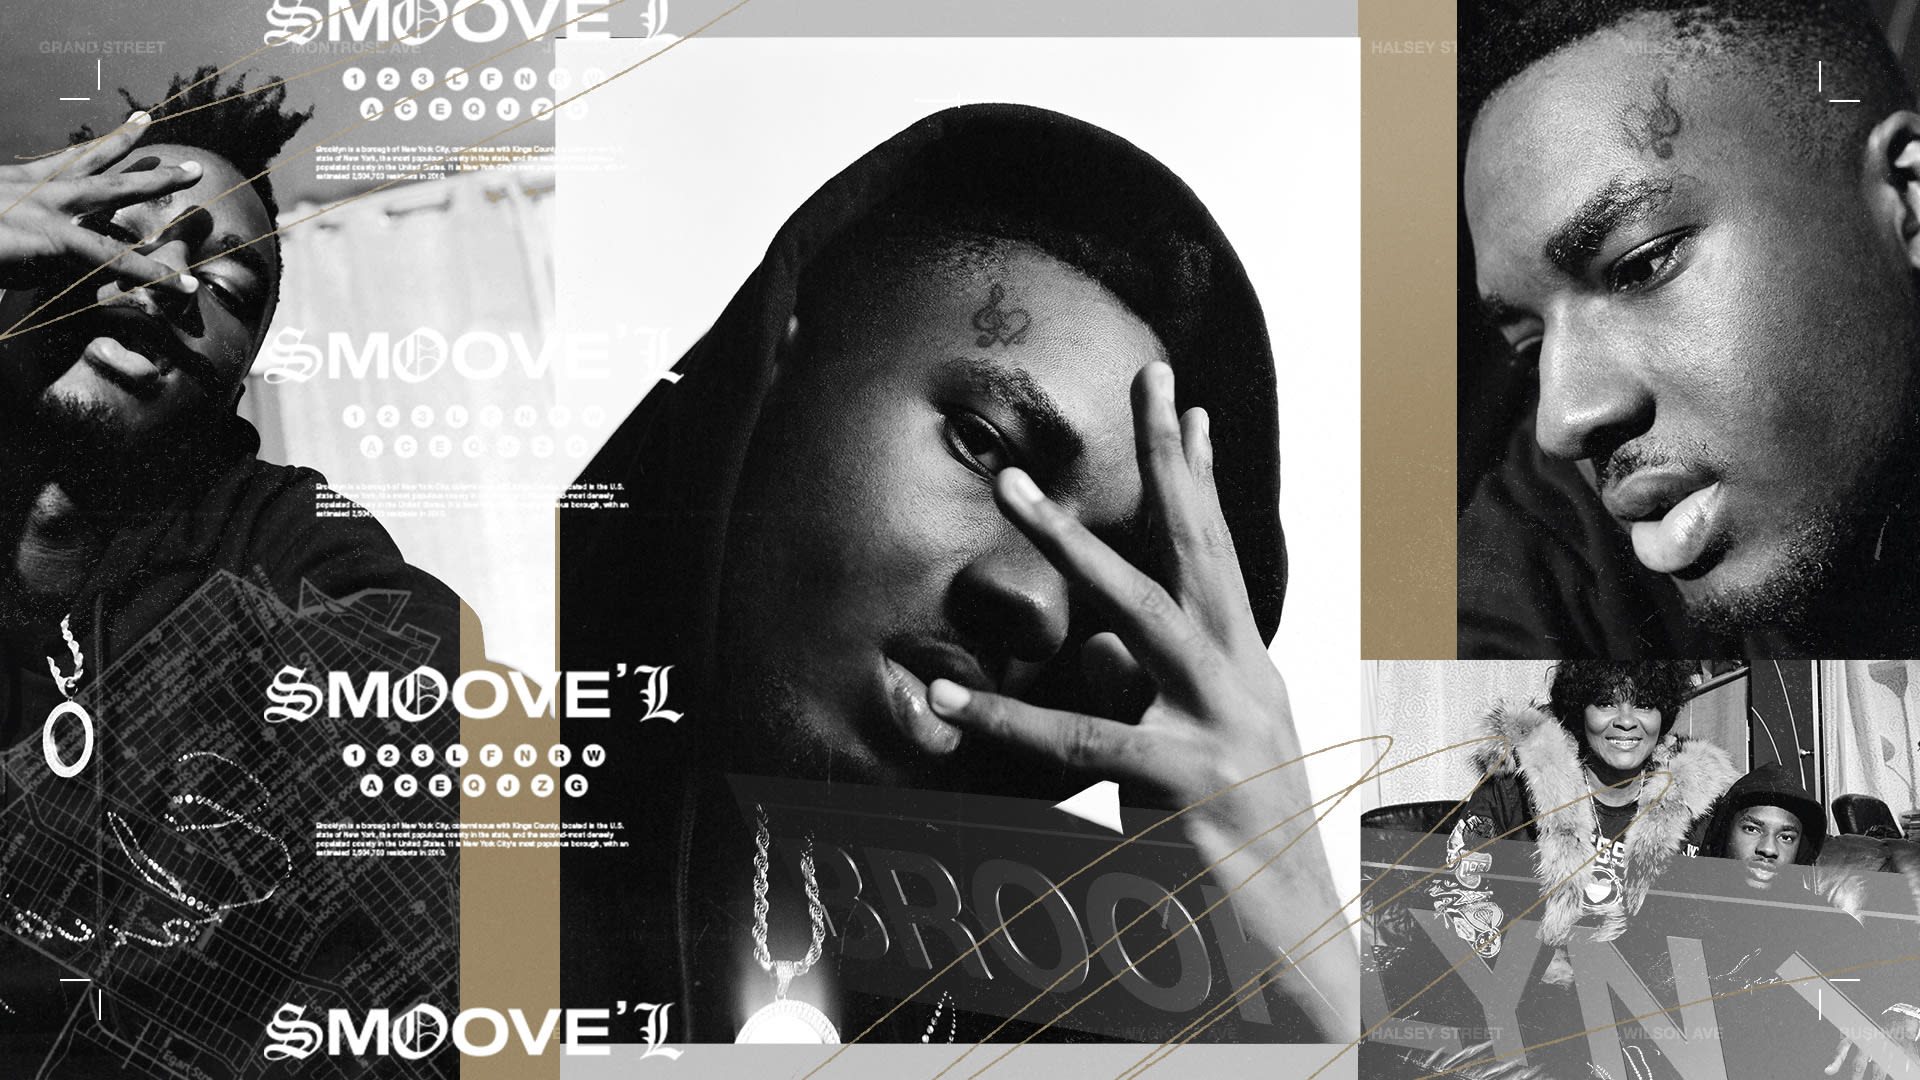 Smoove'L poses for his Complex interview